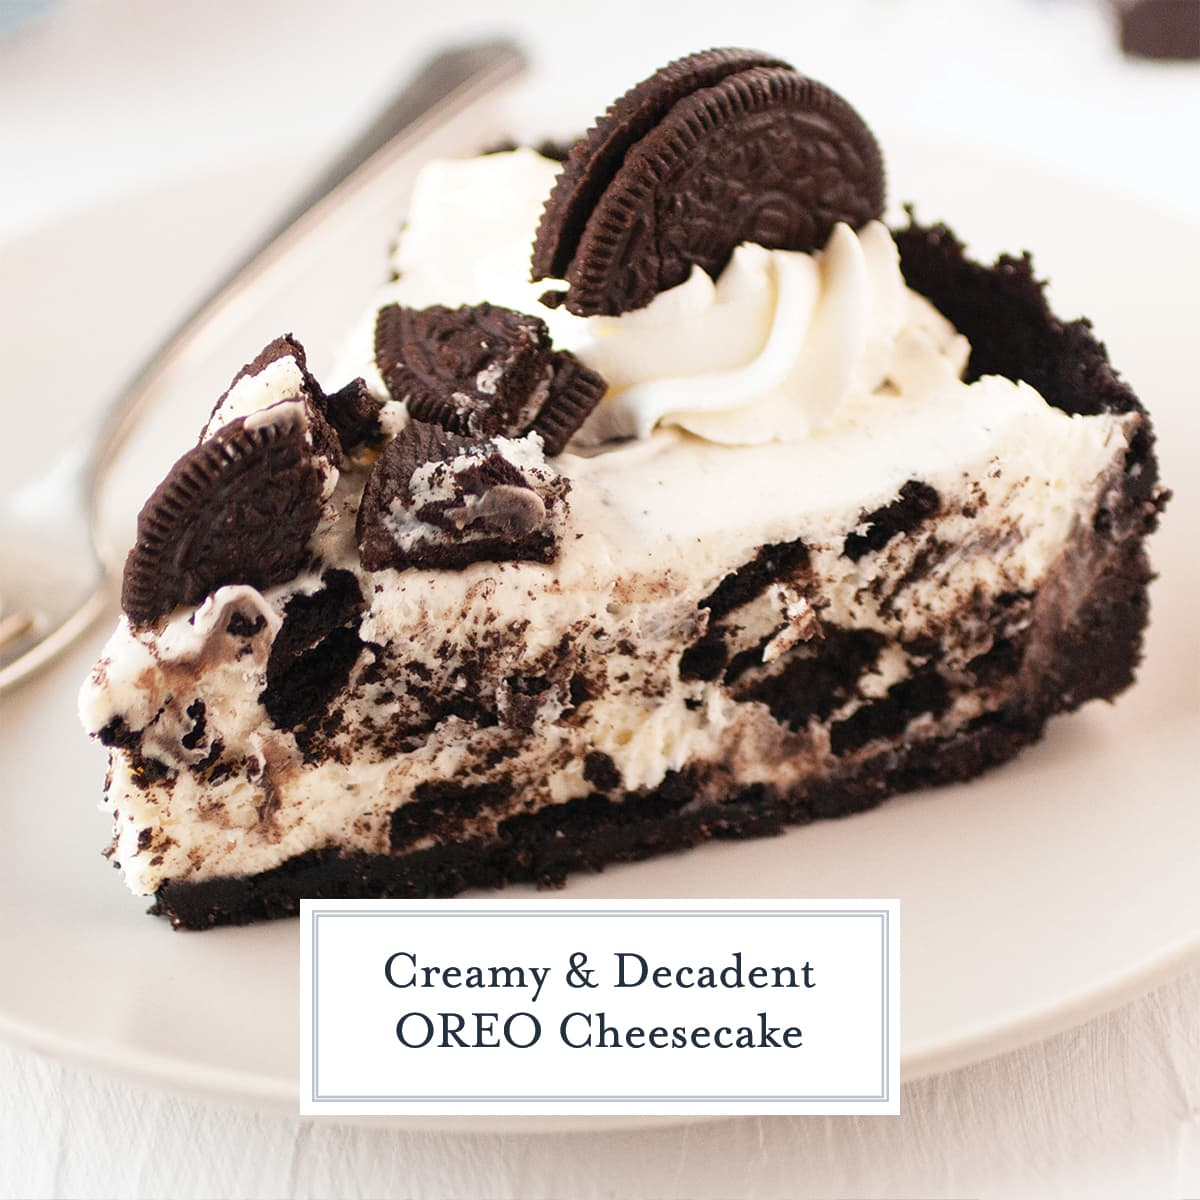 Oreo Cheesecake Cookie Crust With No Bake Oreo Filling